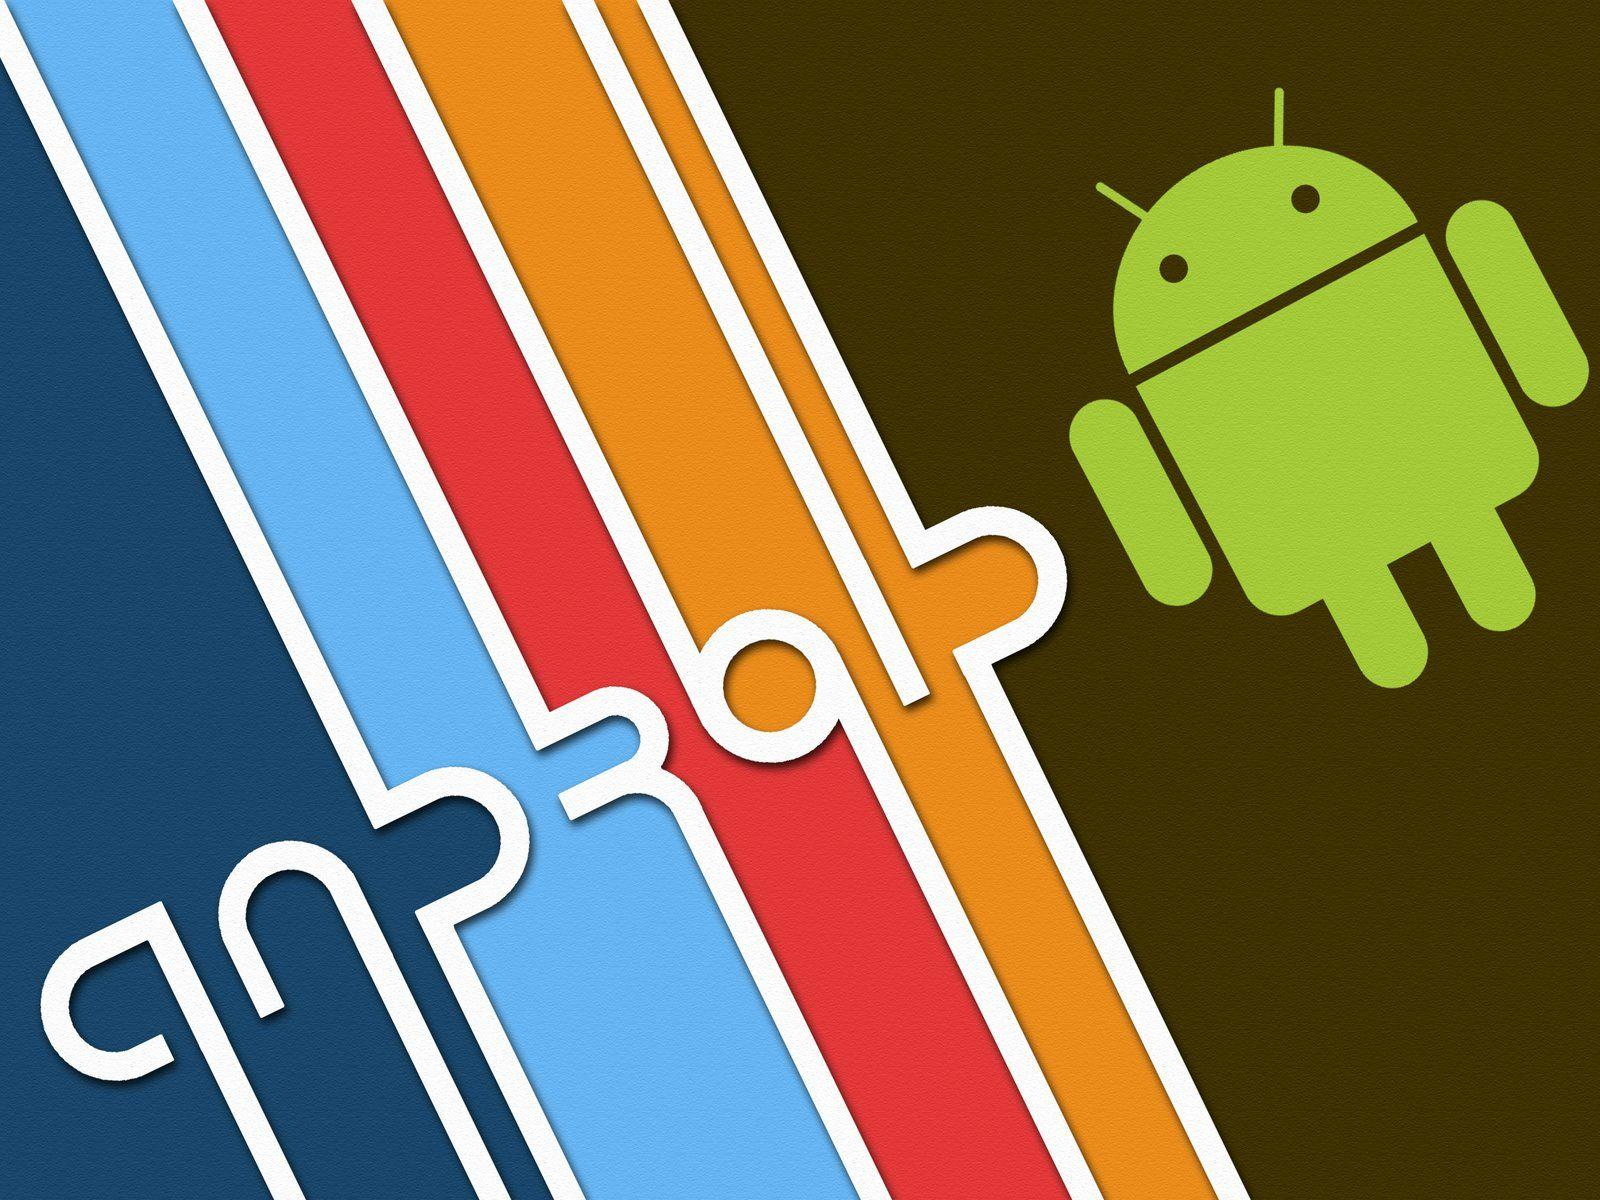 Fearsome Android Logo Black Hd Wallpapers 1920x1080PX ~ Andriod